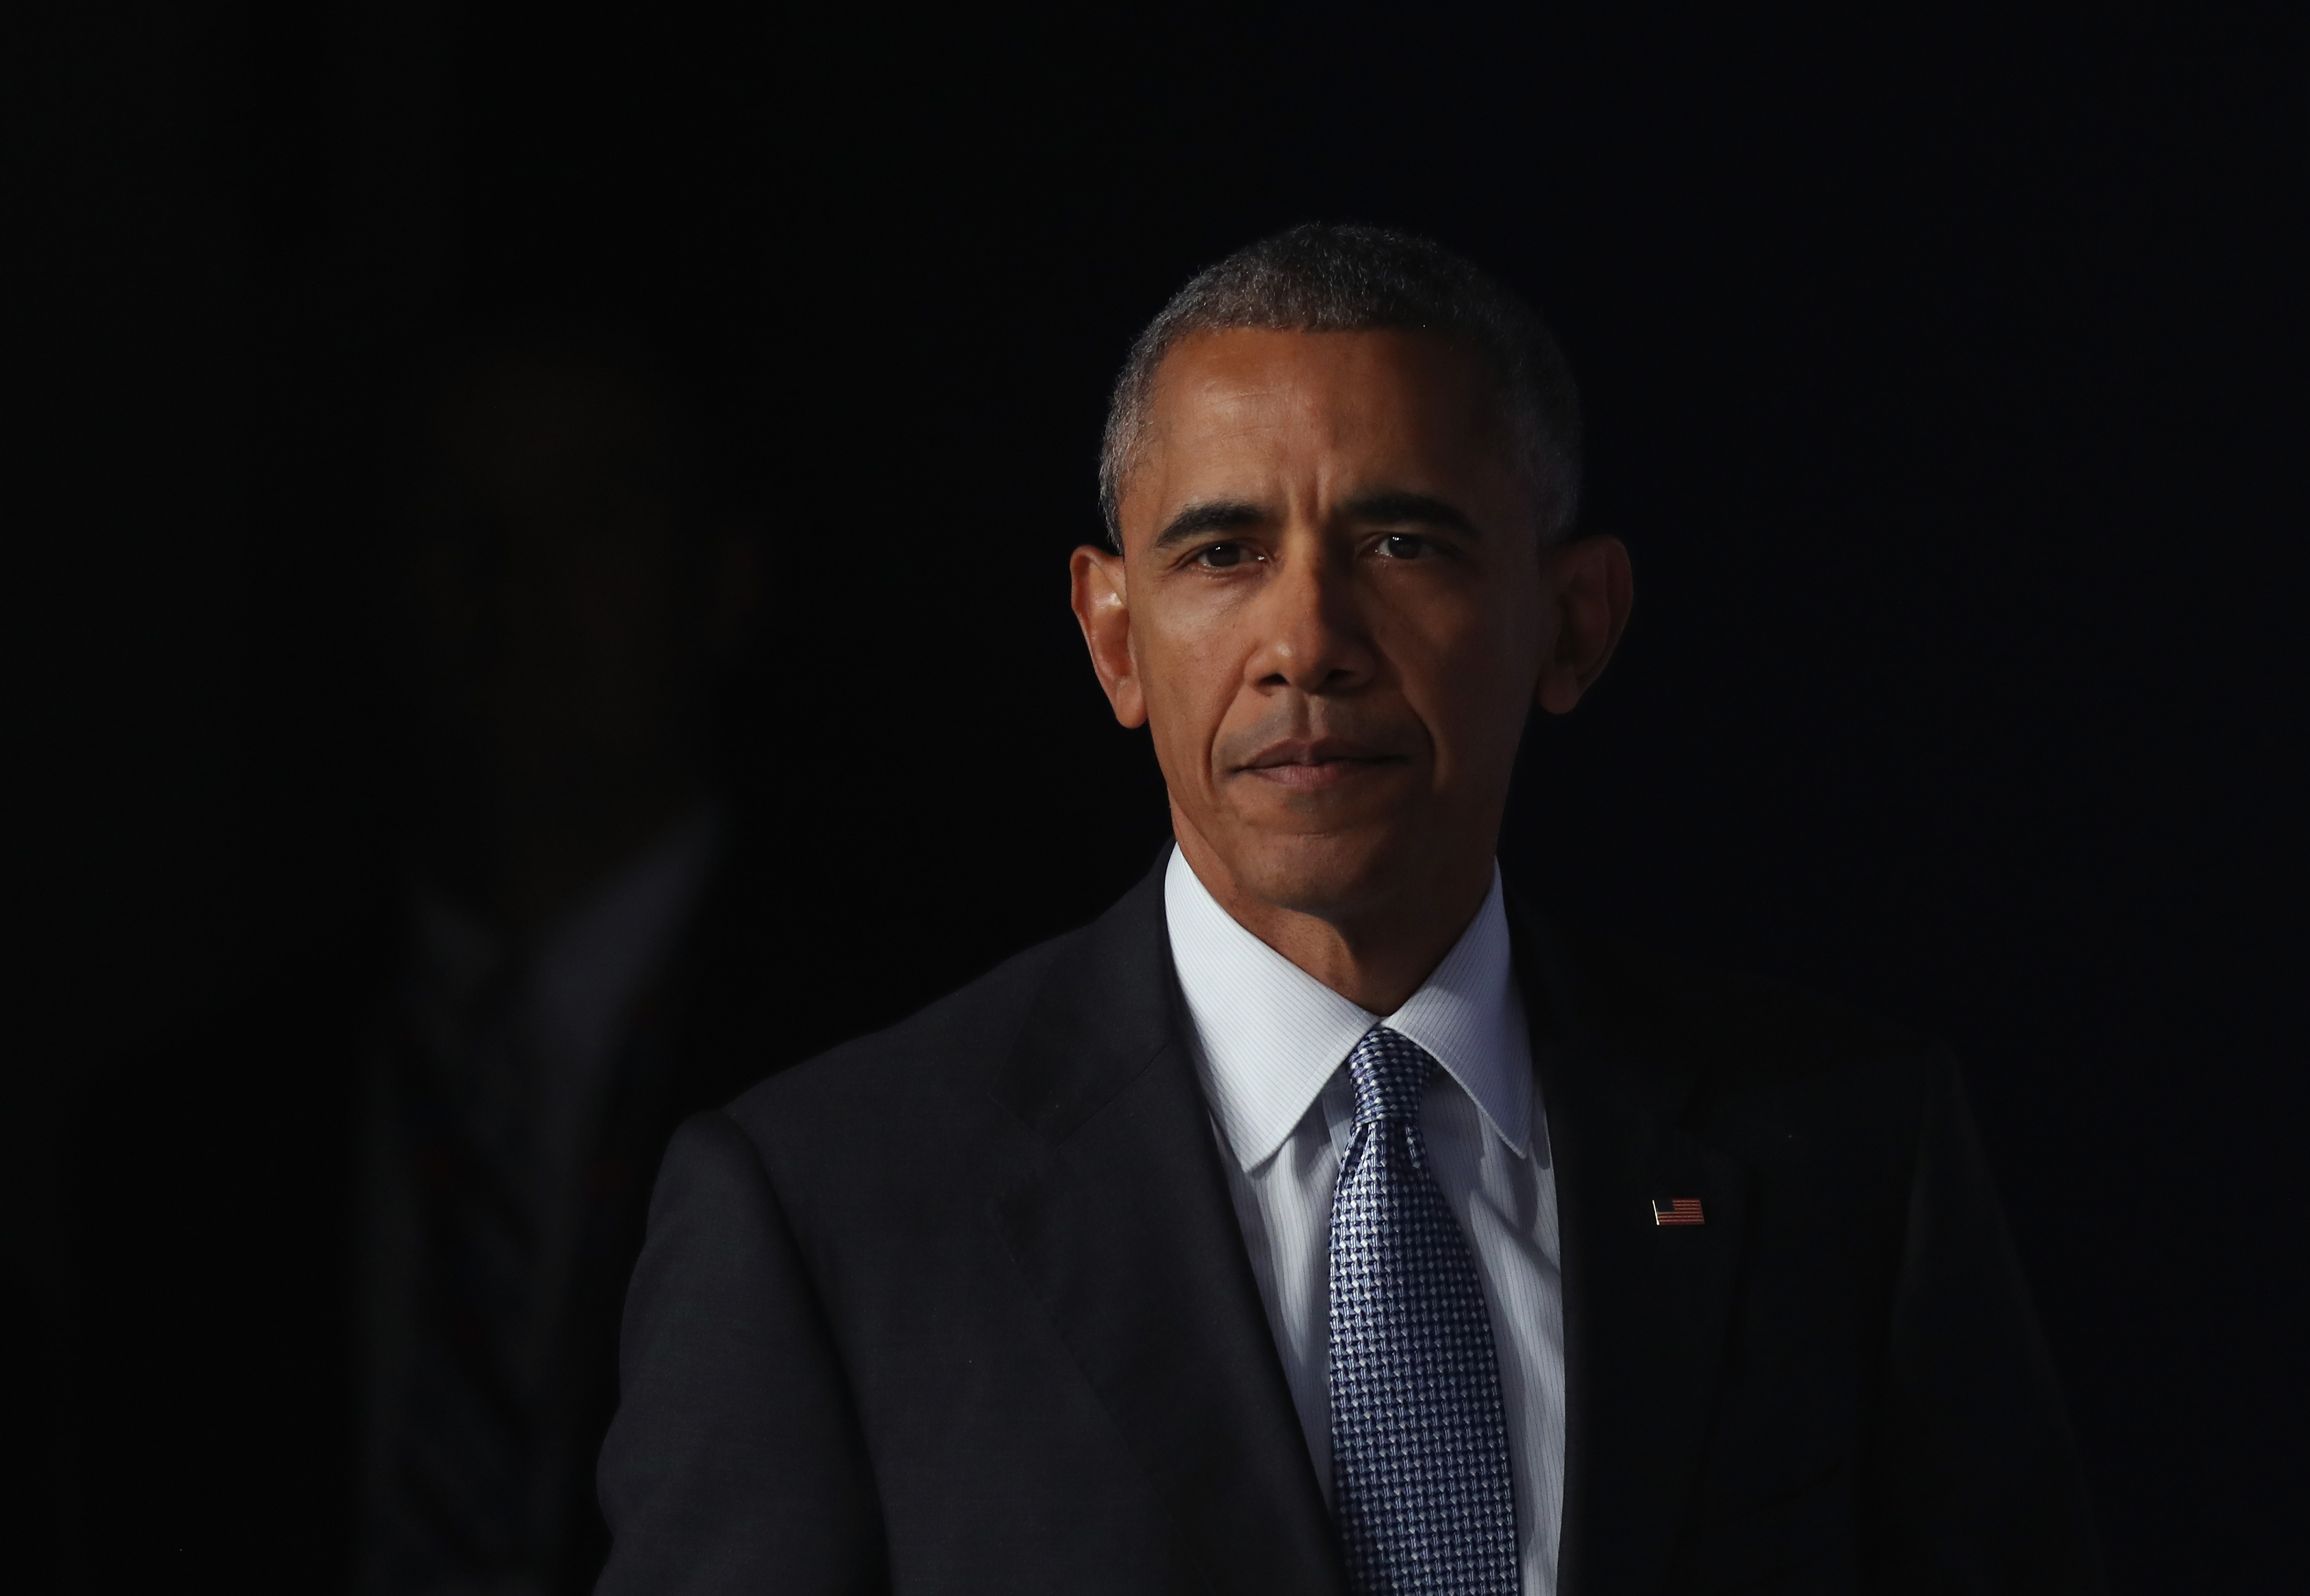 U.S. President Barack Obama arrives to speak to the media at the conclusion of the Warsaw NATO Summit in Warsaw, on July 9, 2016.